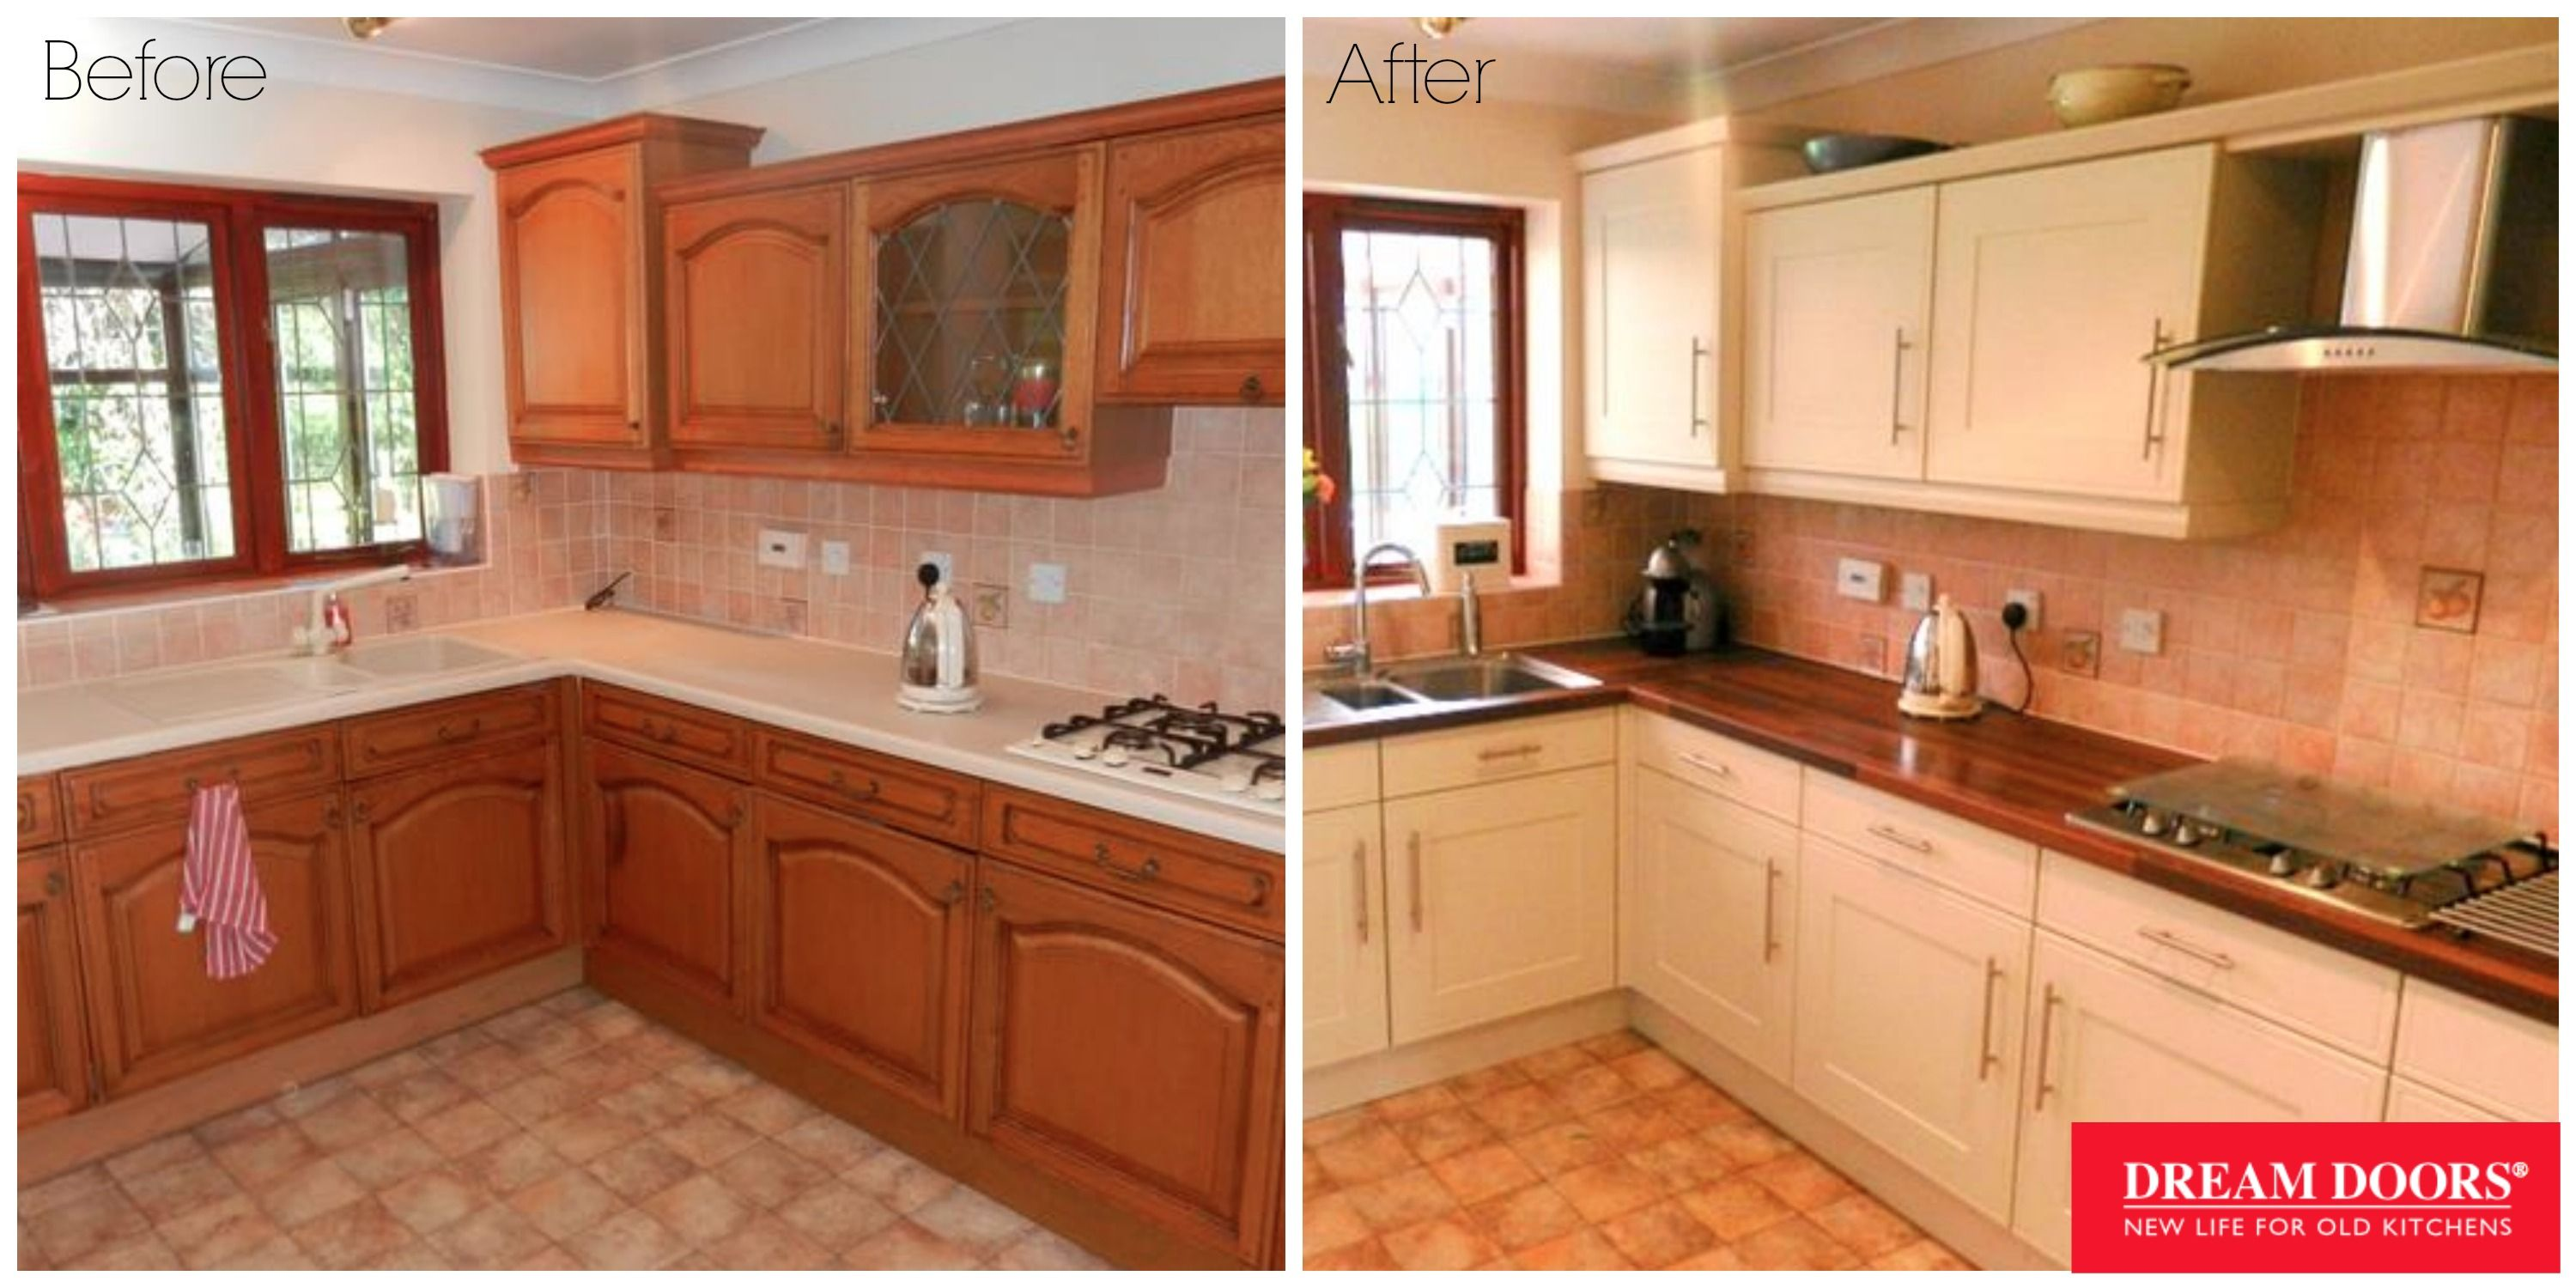 kitchen facelift before and after small renovations dream doors wolverhampton makeover https www